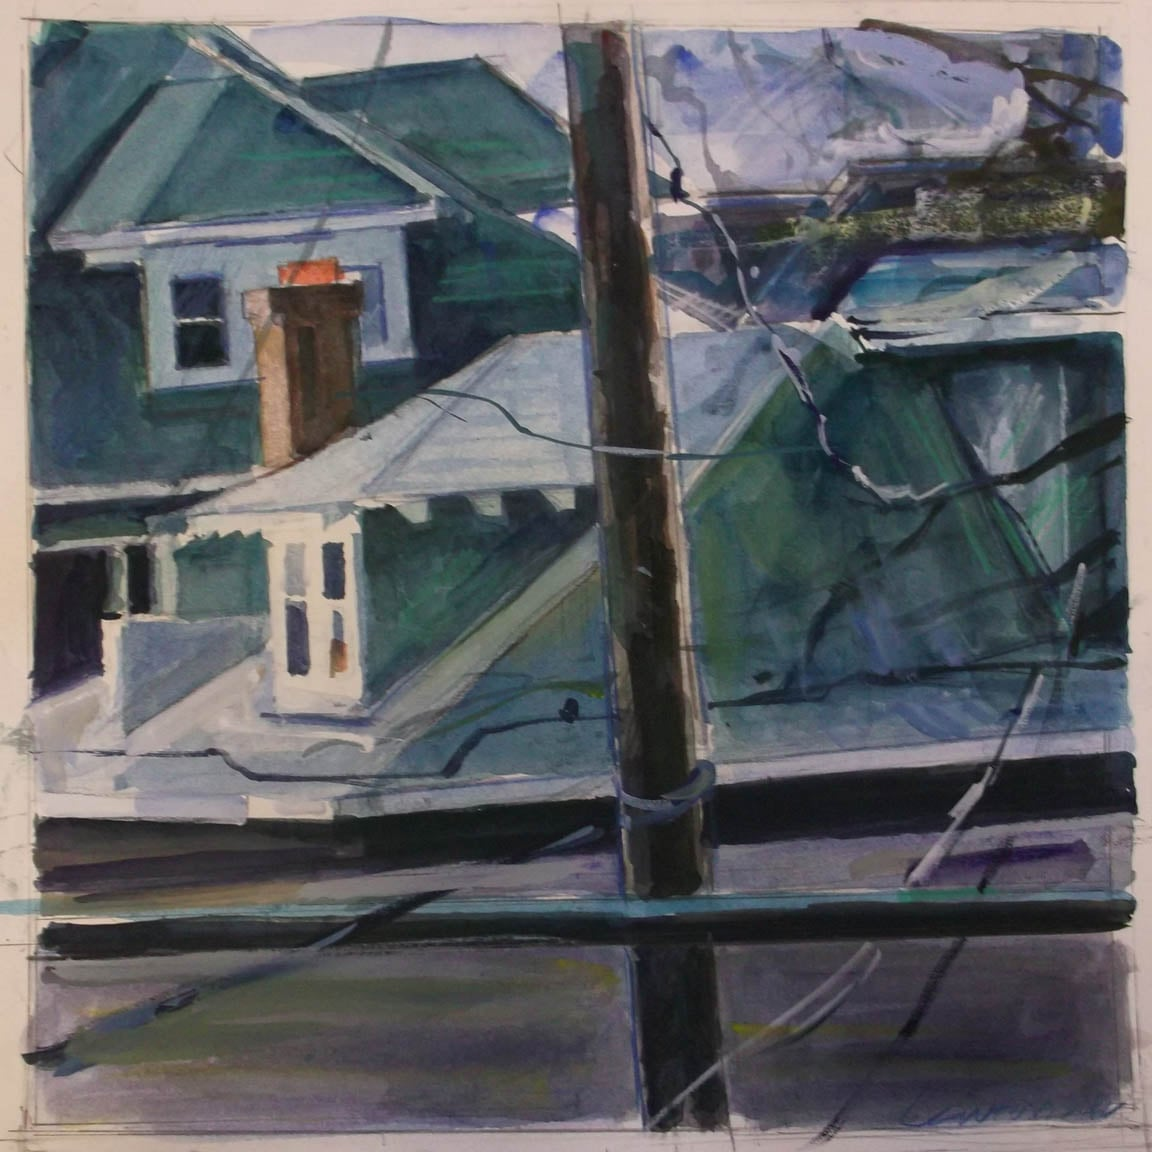 """Brightwood Rooftop 3,gouache on museum board,14"""" x 14"""", 2012 On Exhibit, Addison/Ripley Fine Art, DC"""